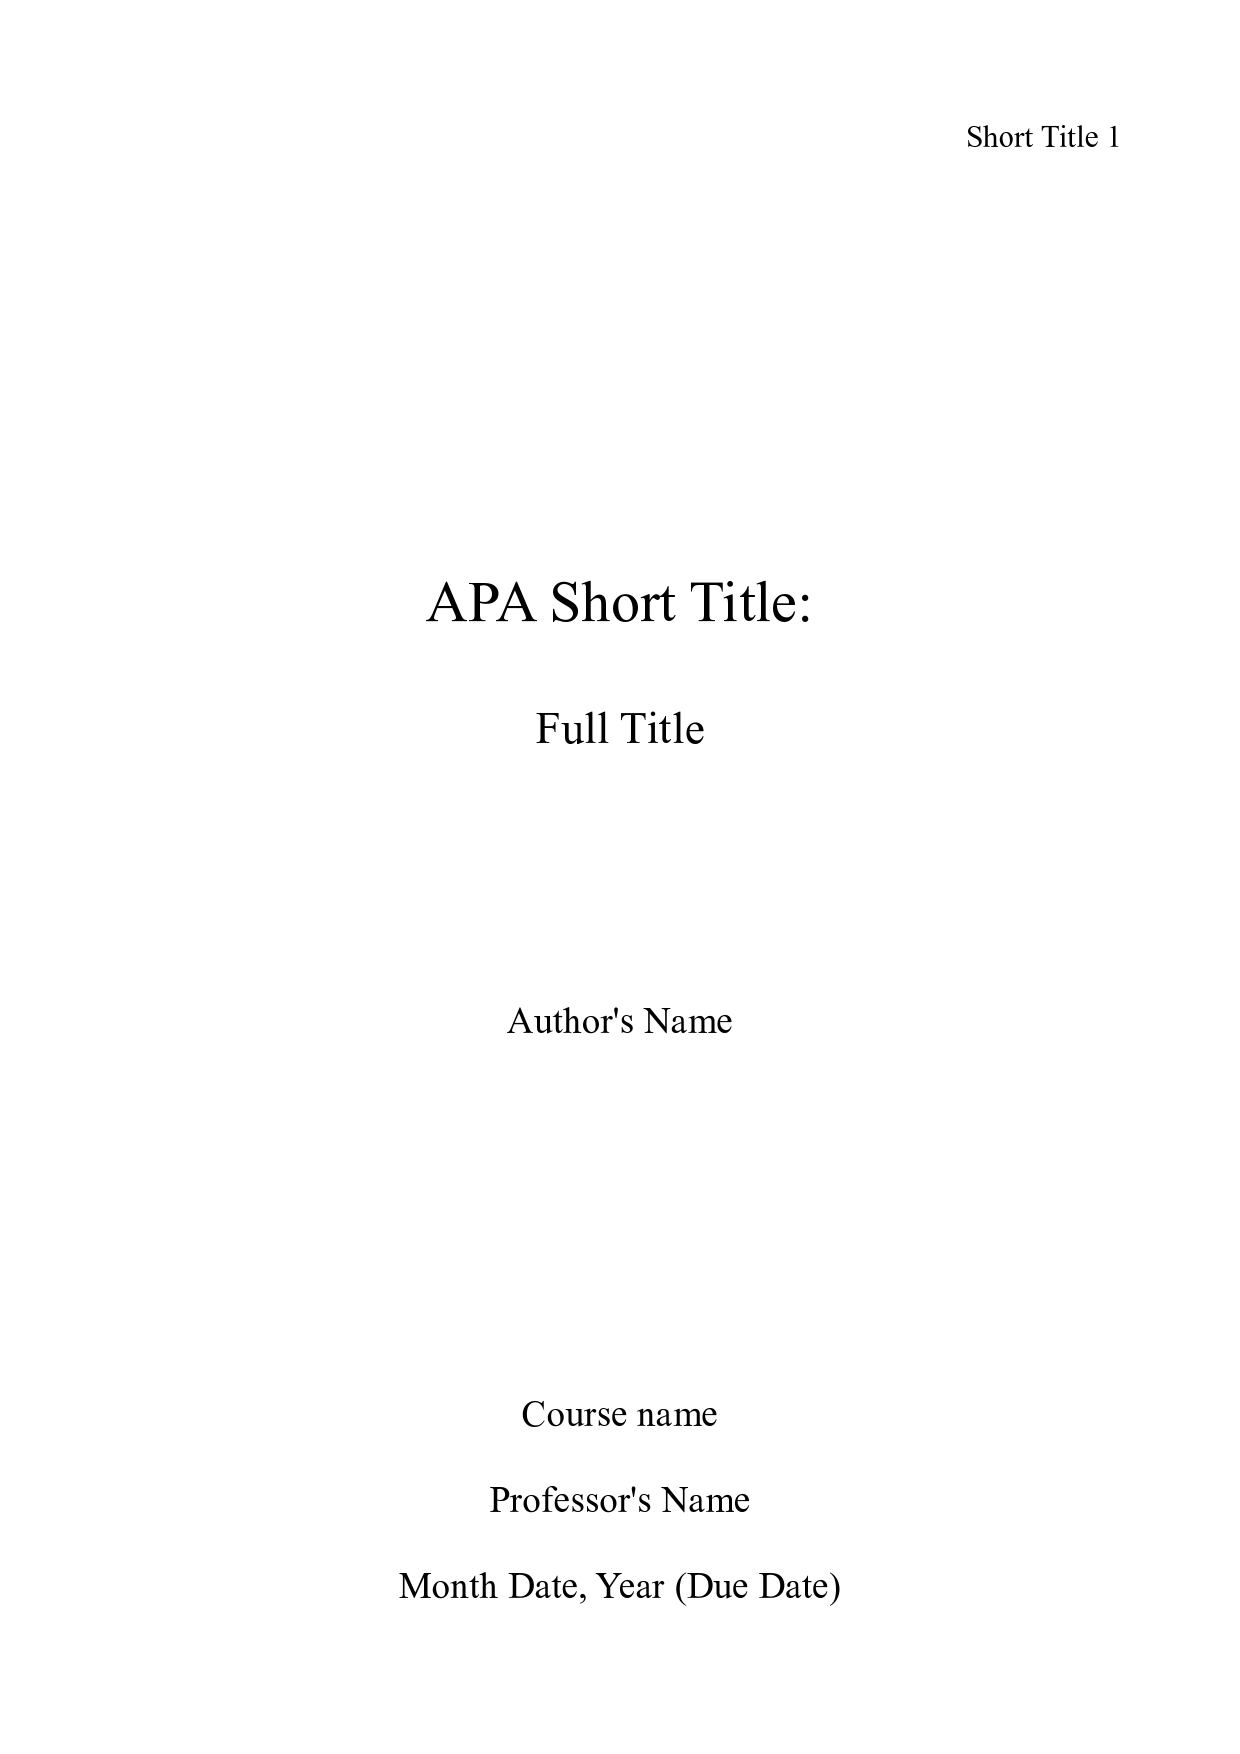 001 Apa Title Page Sample Essay Example Marvelous Cover Research Proposal Full